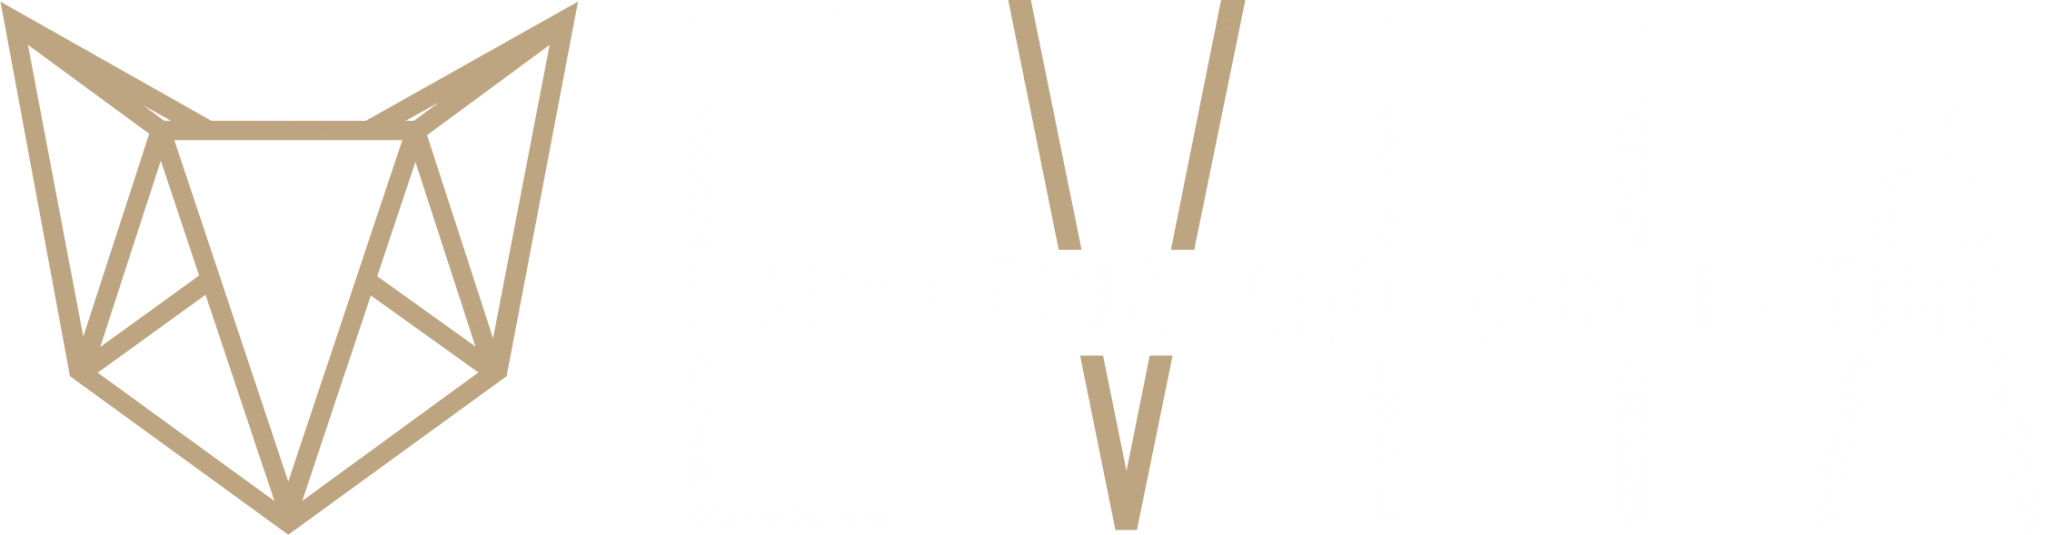 EVITA Marketing - Full Service Werbeagentur